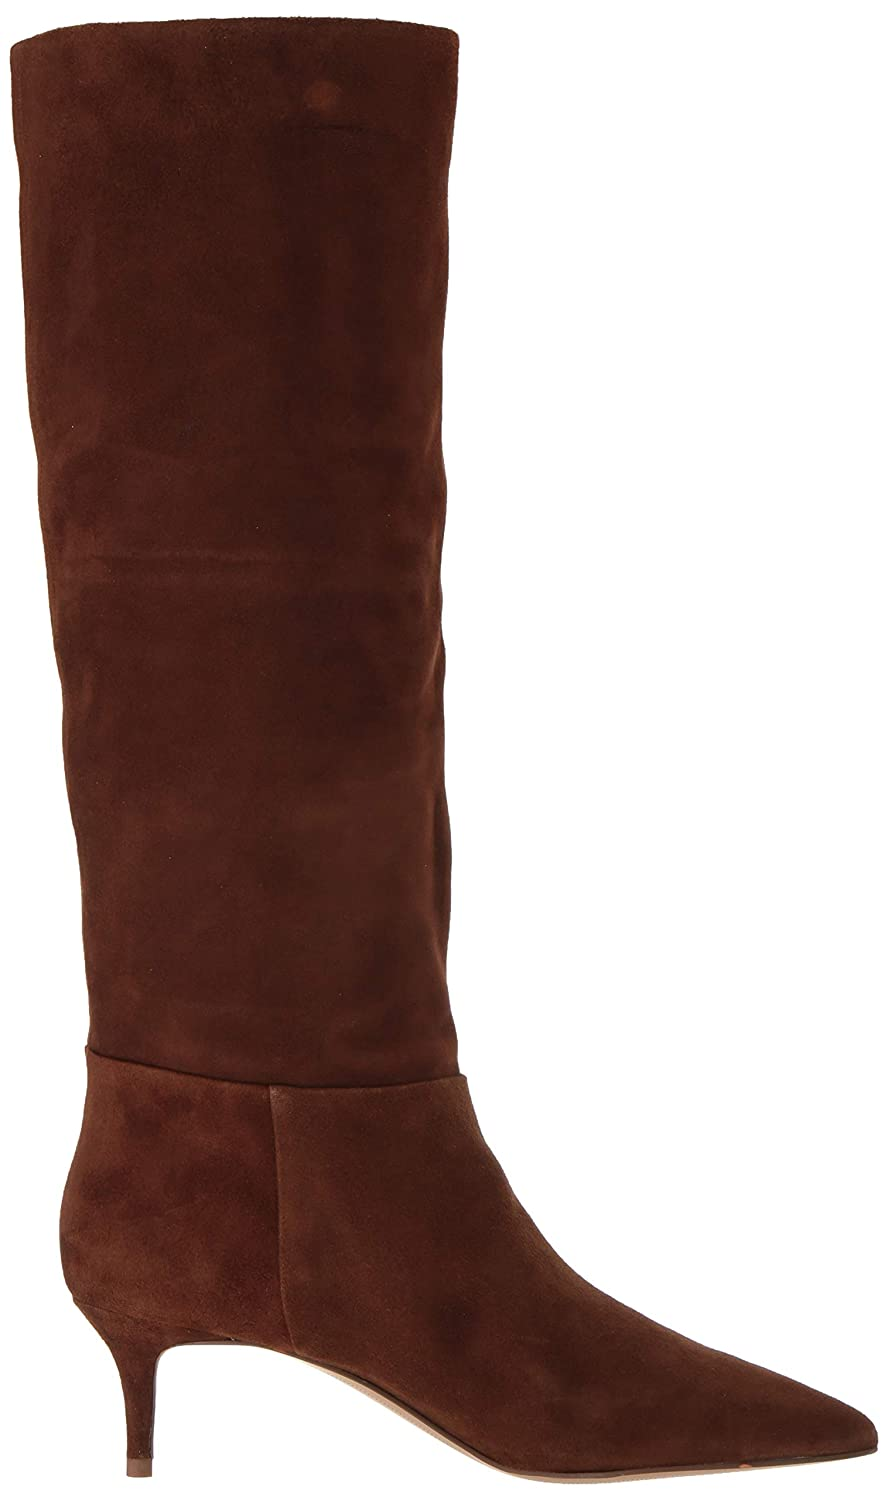 STEVEN by Steve Madden Womens Kirby Fashion Boot